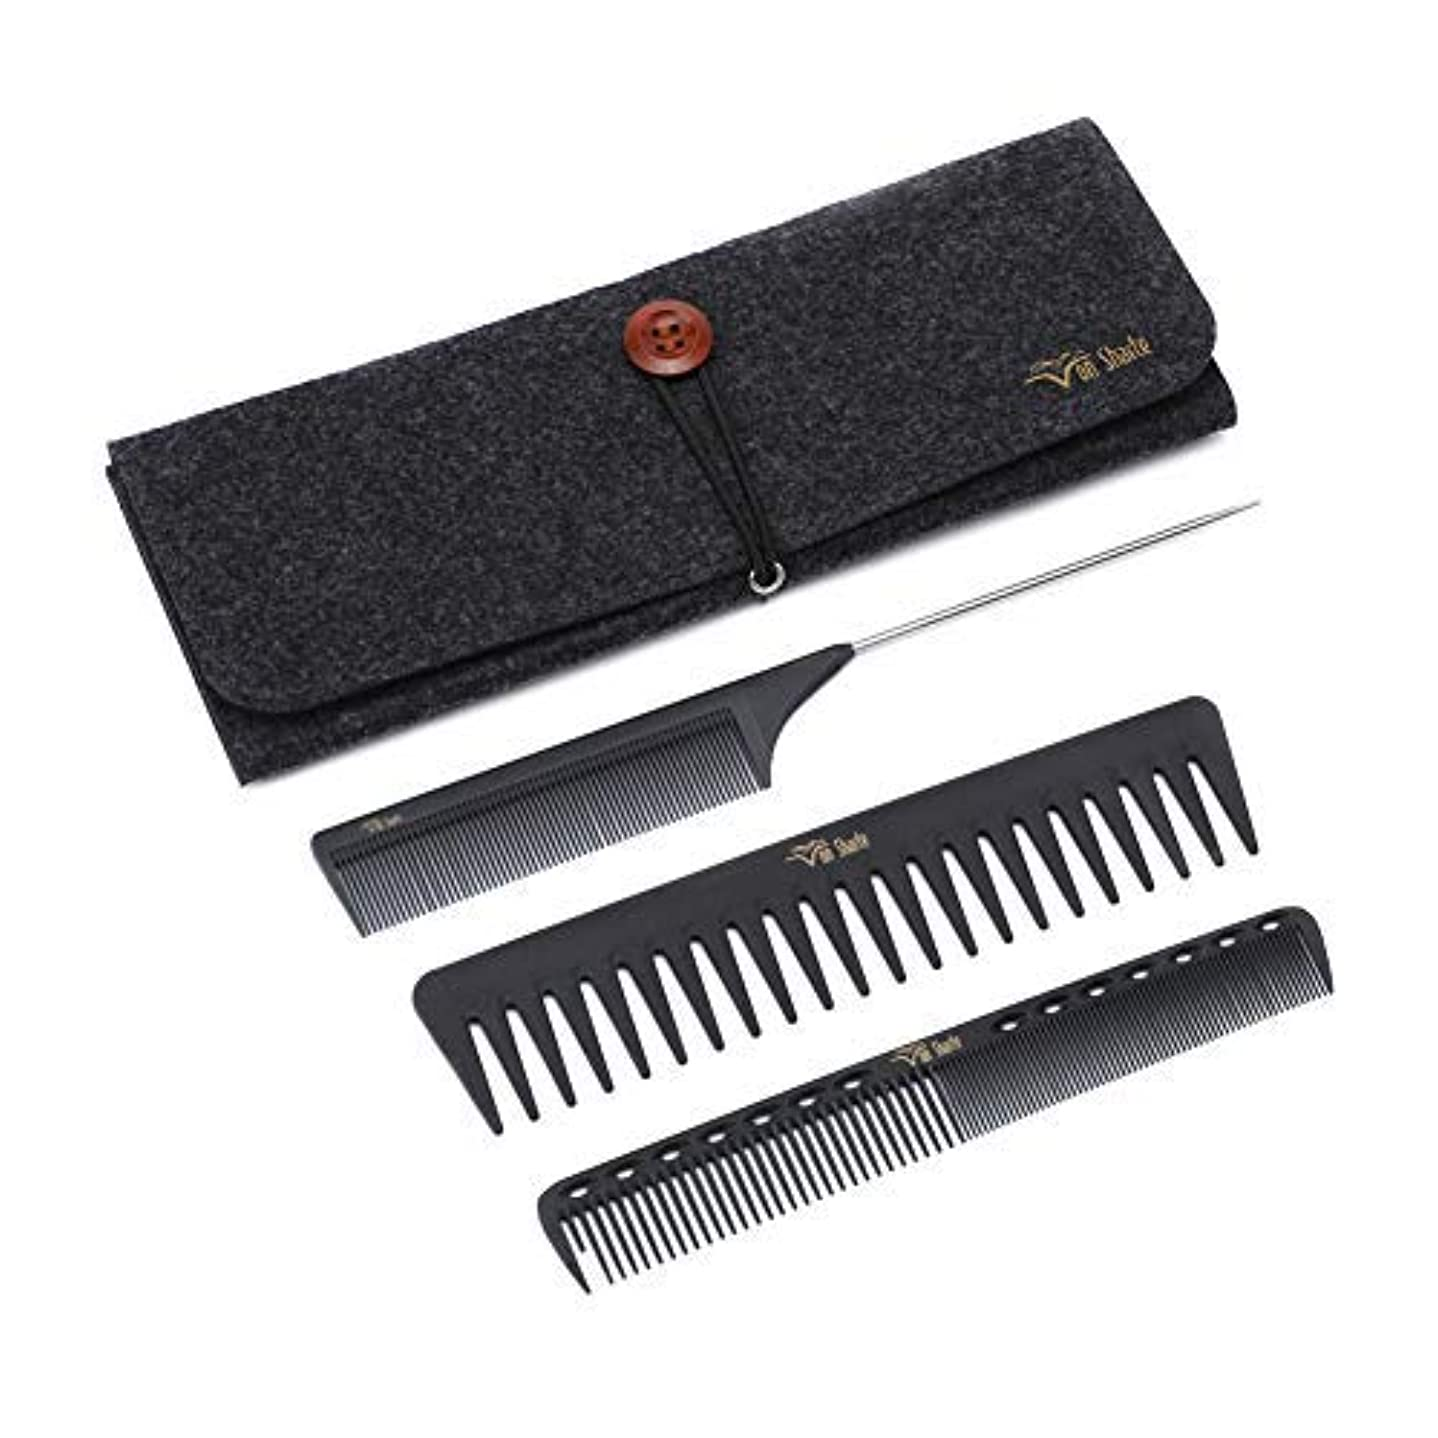 変更ウェイターキルスStyling Comb Set,Hairdresser Barber Comb Cutting Hair Comb Carbon Fiber Wide Tooth Comb Metal Rat Pin Tail Comb...